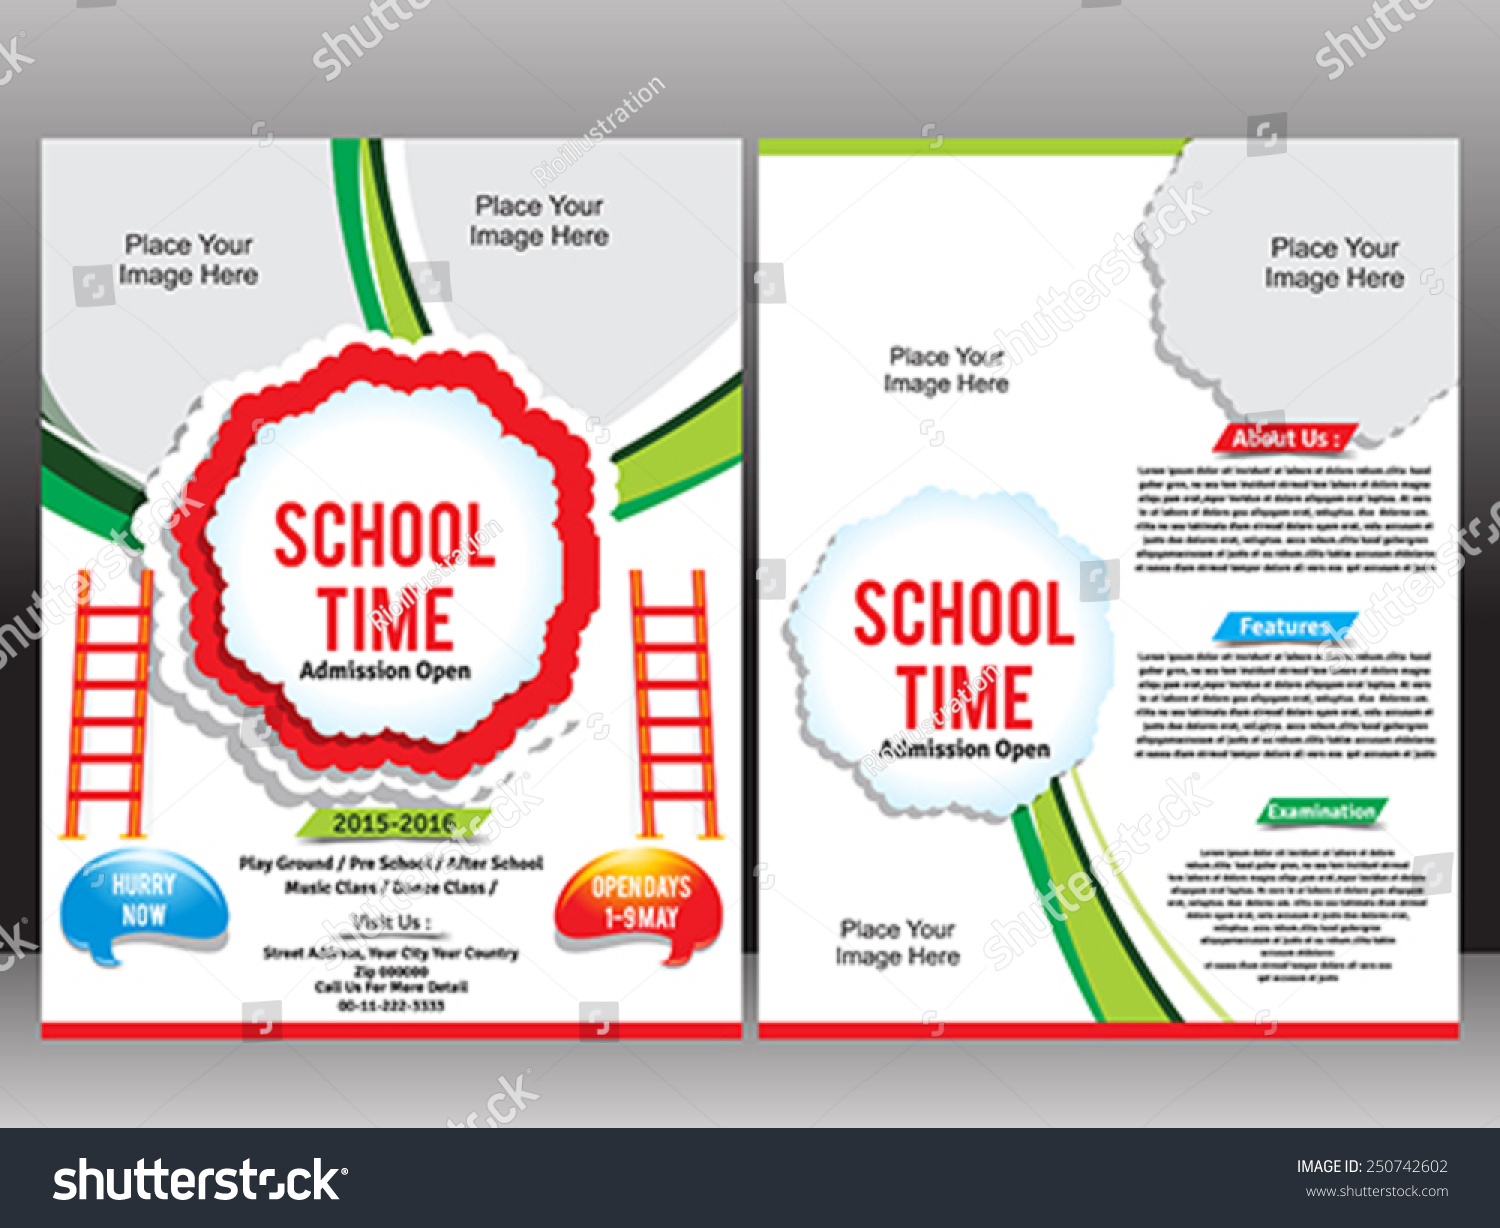 school admission flyer template vector illustration stock vector school admission flyer template vector illustration